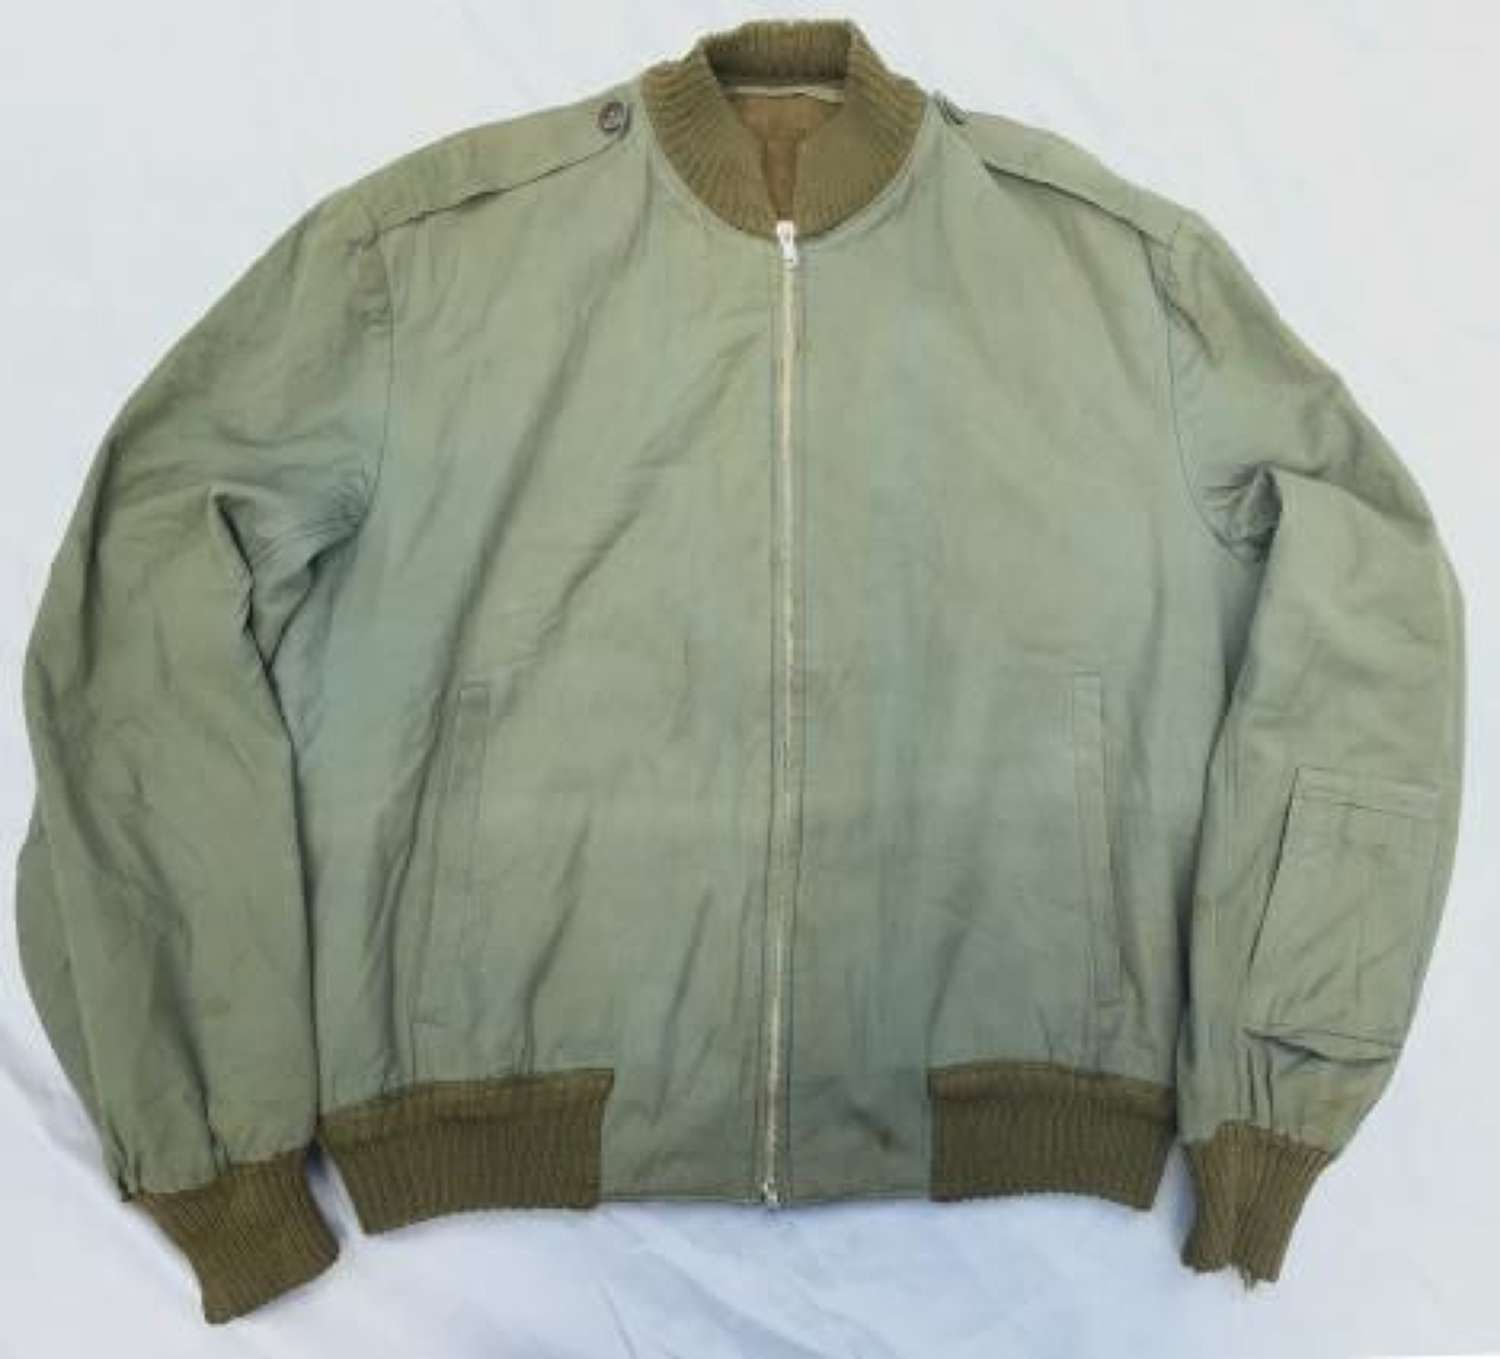 Original German Occupation made 'Euro Tanker' Jacket